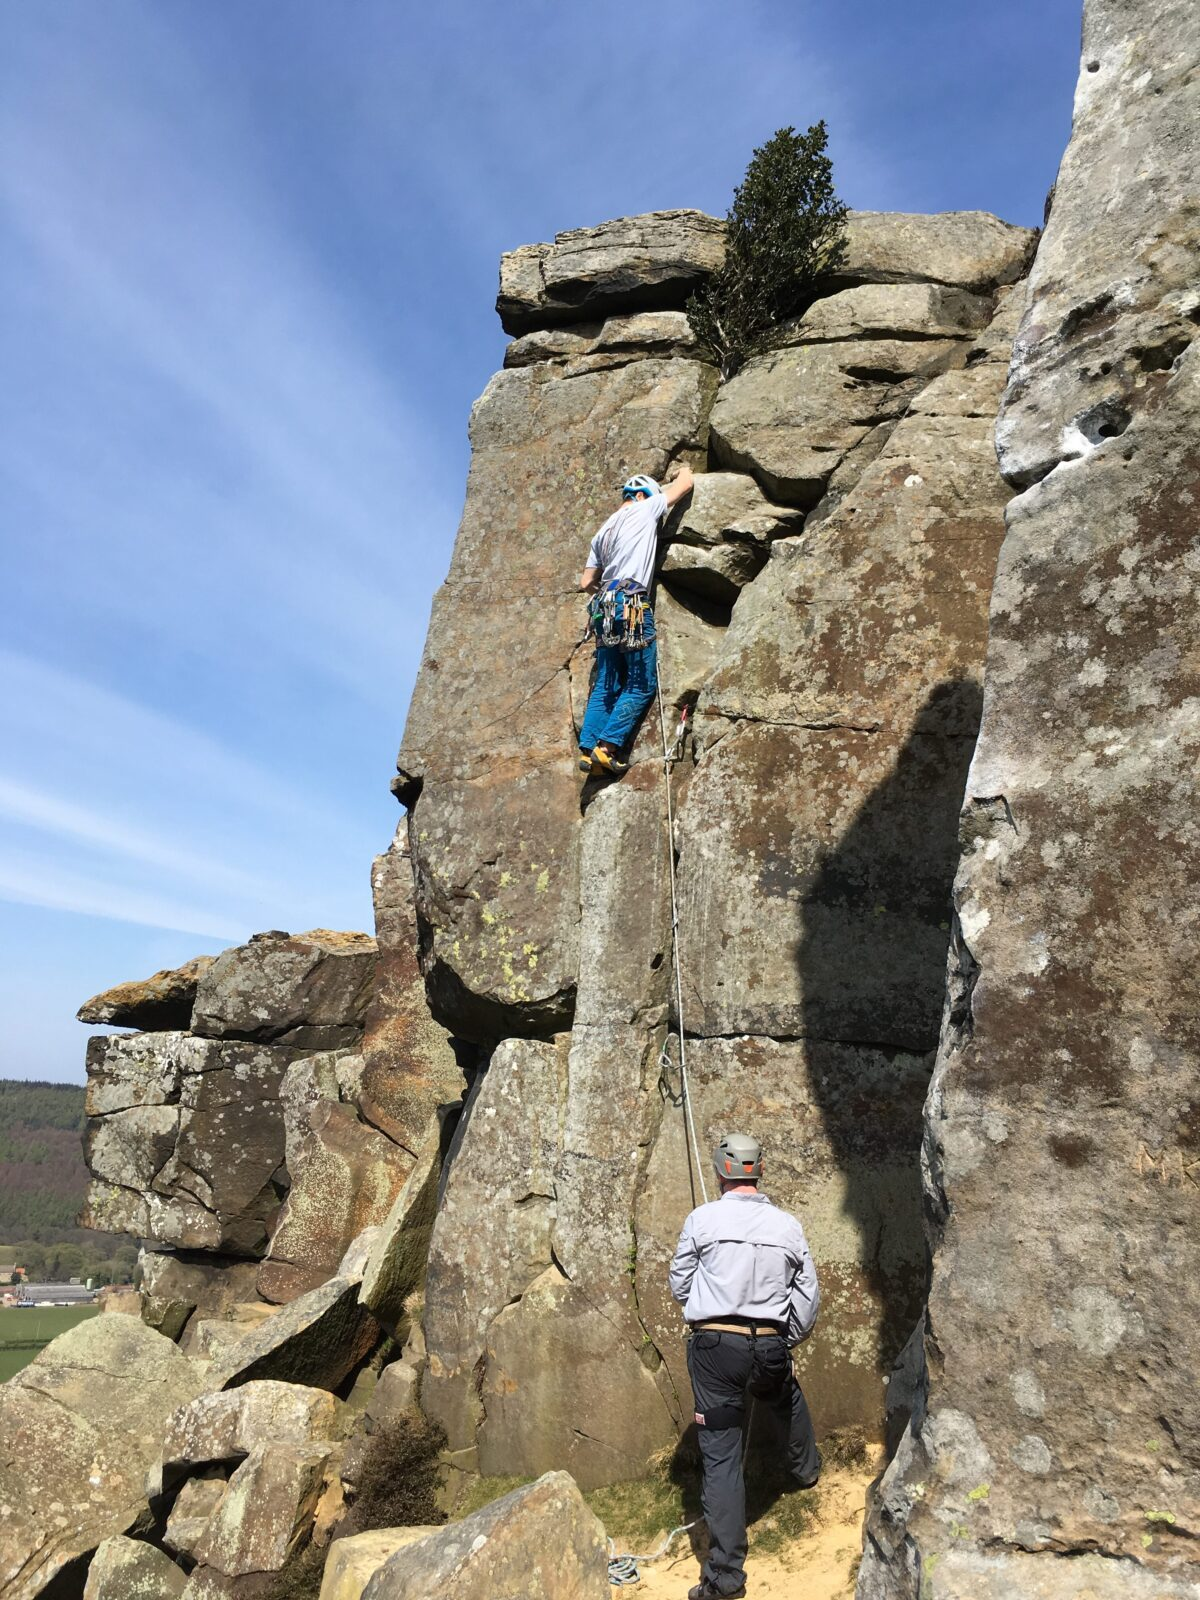 Mark climbing with a partner in the North York Moors.